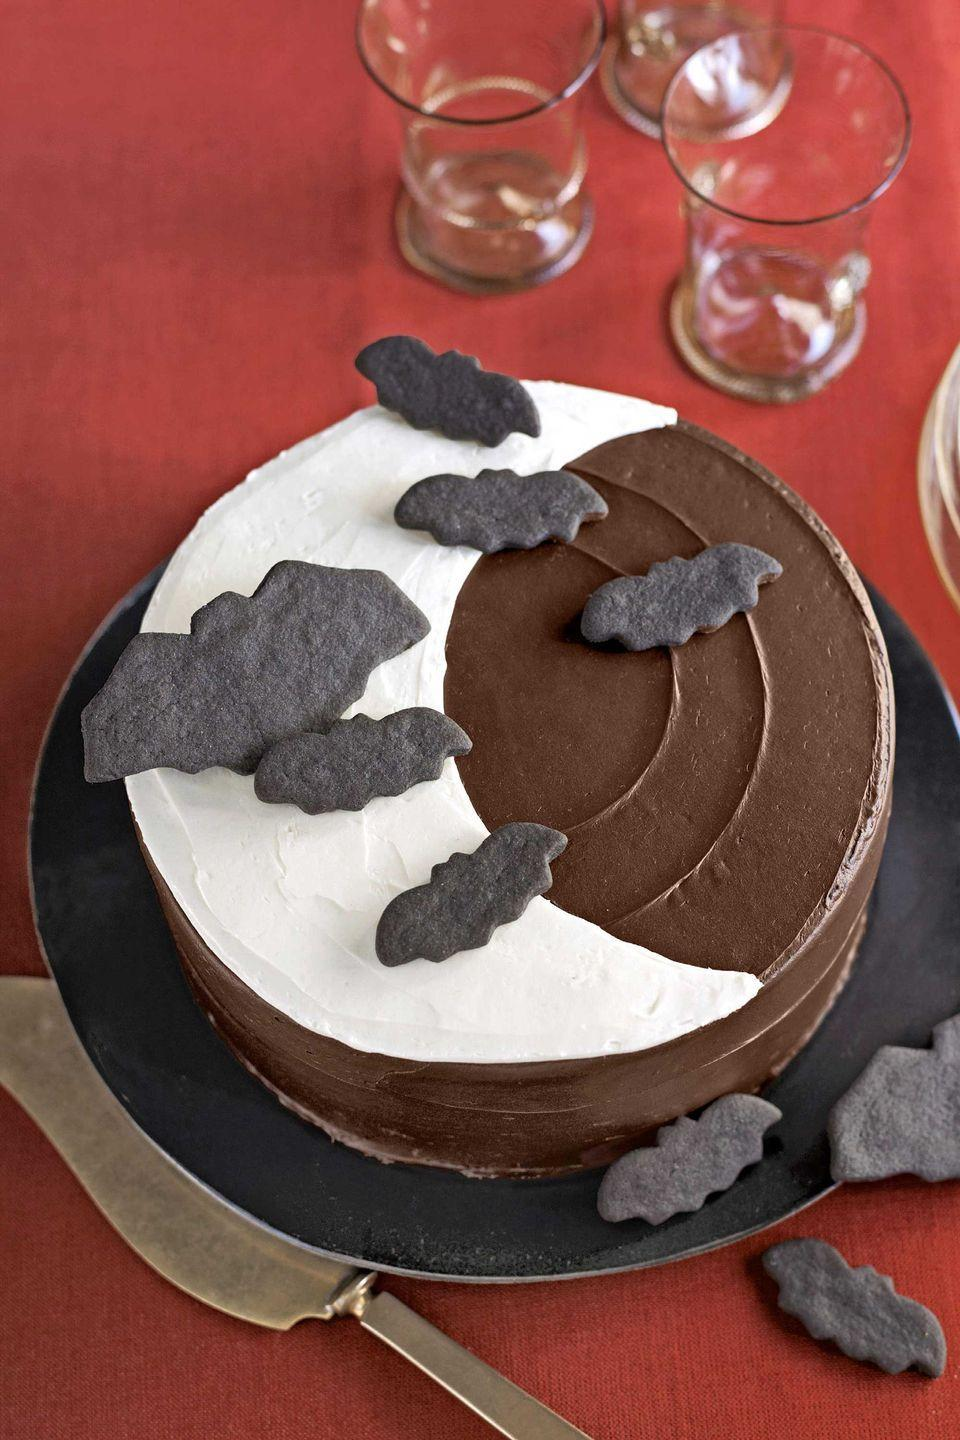 """<p>A simple chocolate cake gets added snack appeal from bat-shaped sugar cookies.</p><p><strong><a href=""""https://www.countryliving.com/food-drinks/recipes/a3013/over-the-moon-cake-recipe/"""" rel=""""nofollow noopener"""" target=""""_blank"""" data-ylk=""""slk:Get the recipe"""" class=""""link rapid-noclick-resp"""">Get the recipe</a>.</strong> </p>"""